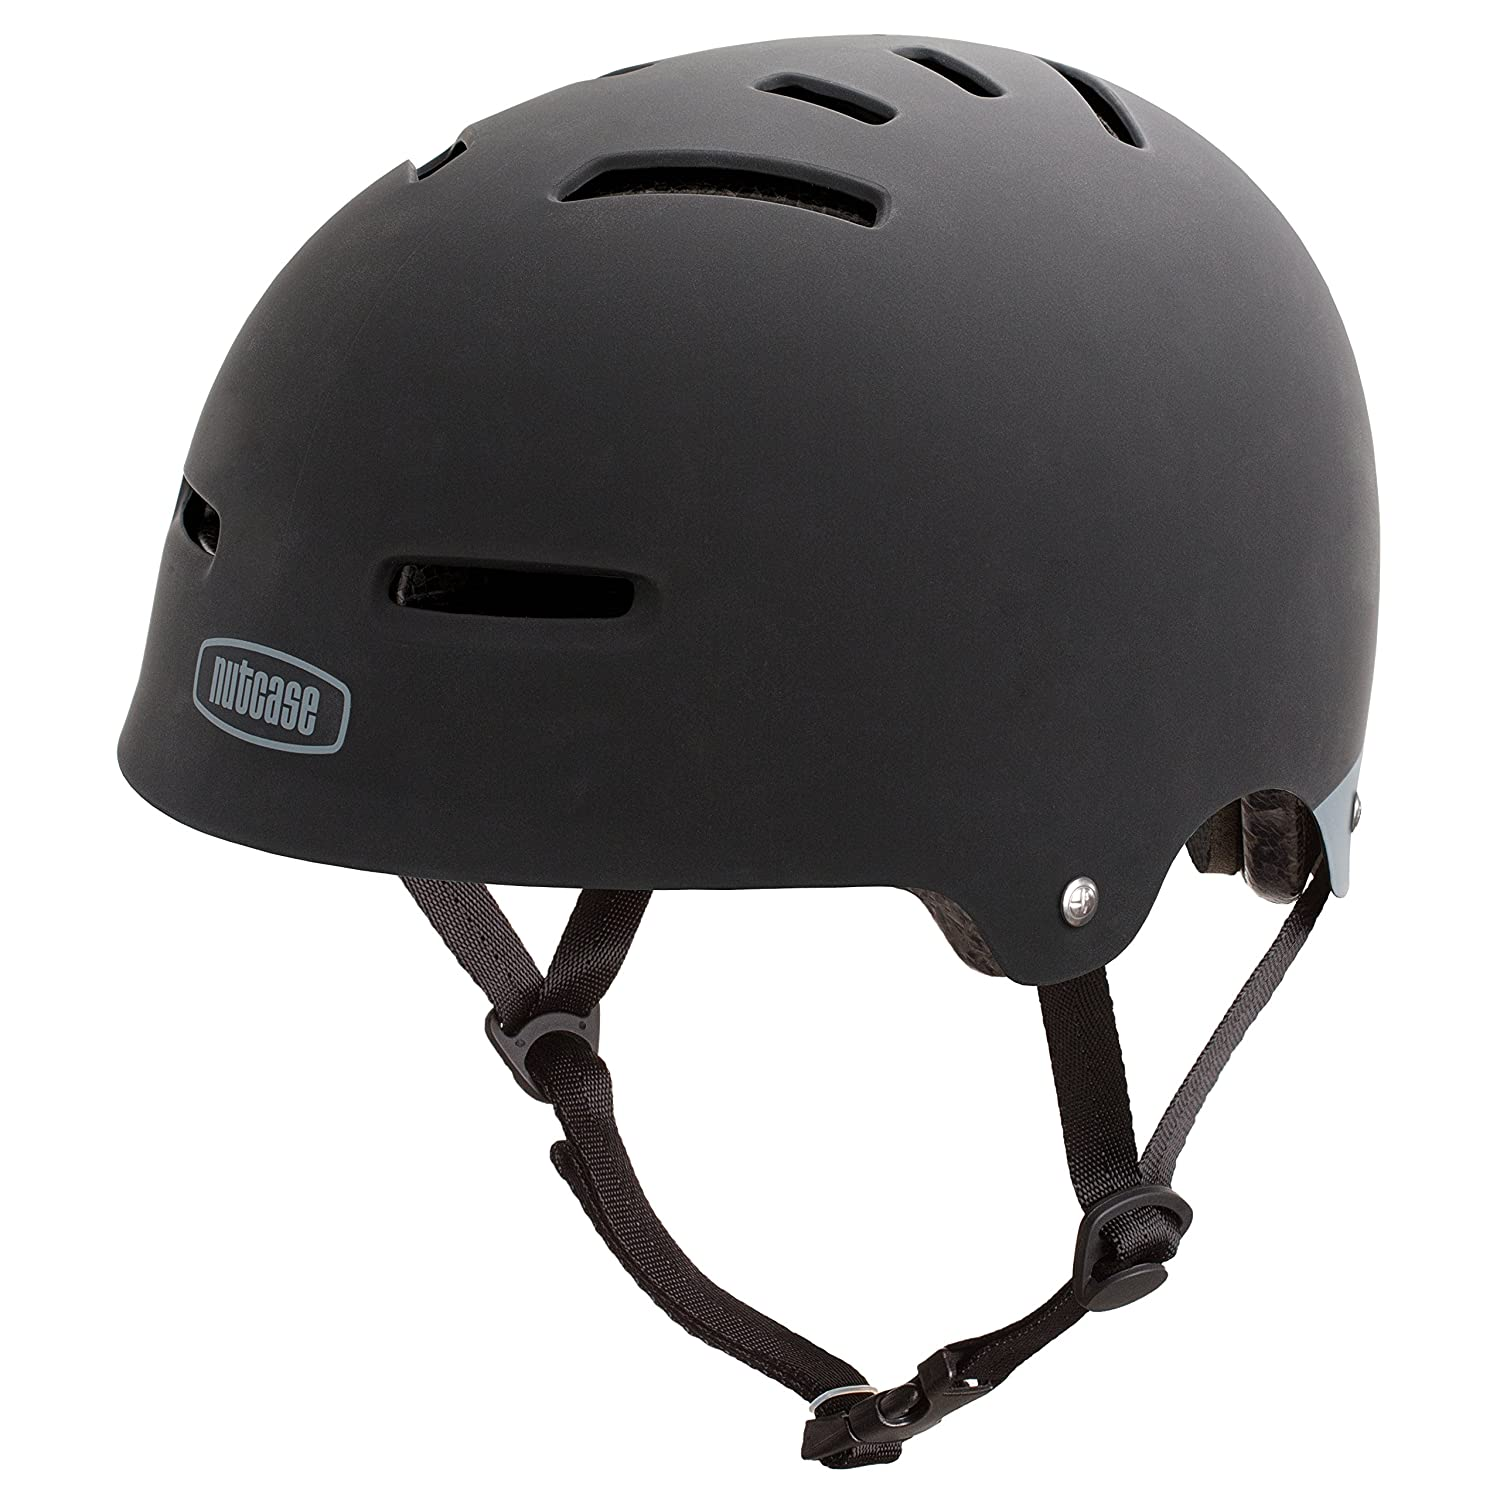 Nutcase The Zone Helm, schwarz NUTD6|#Nutcase ZONE-3000M-S